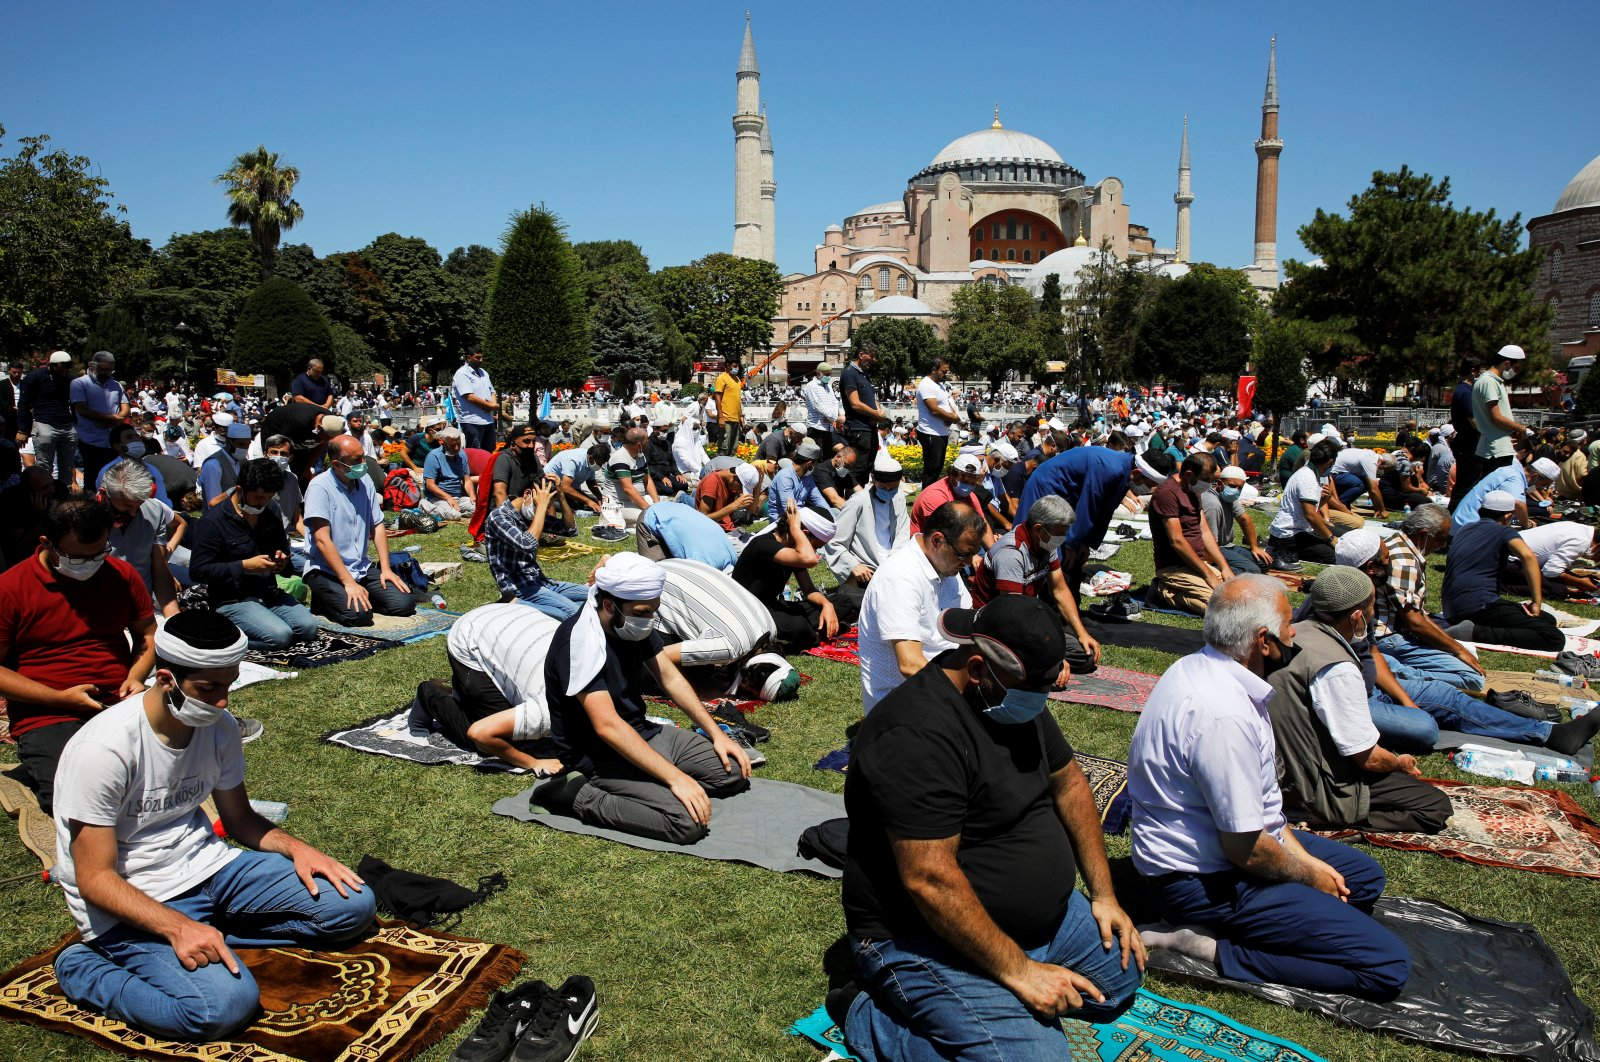 Muslims attend Friday prayers outside Hagia Sophia Grand Mosque for the first time after it was reopened as a mosque after 86 years, Istanbul, Turkey, July 24, 2020. (REUTERS Photo)